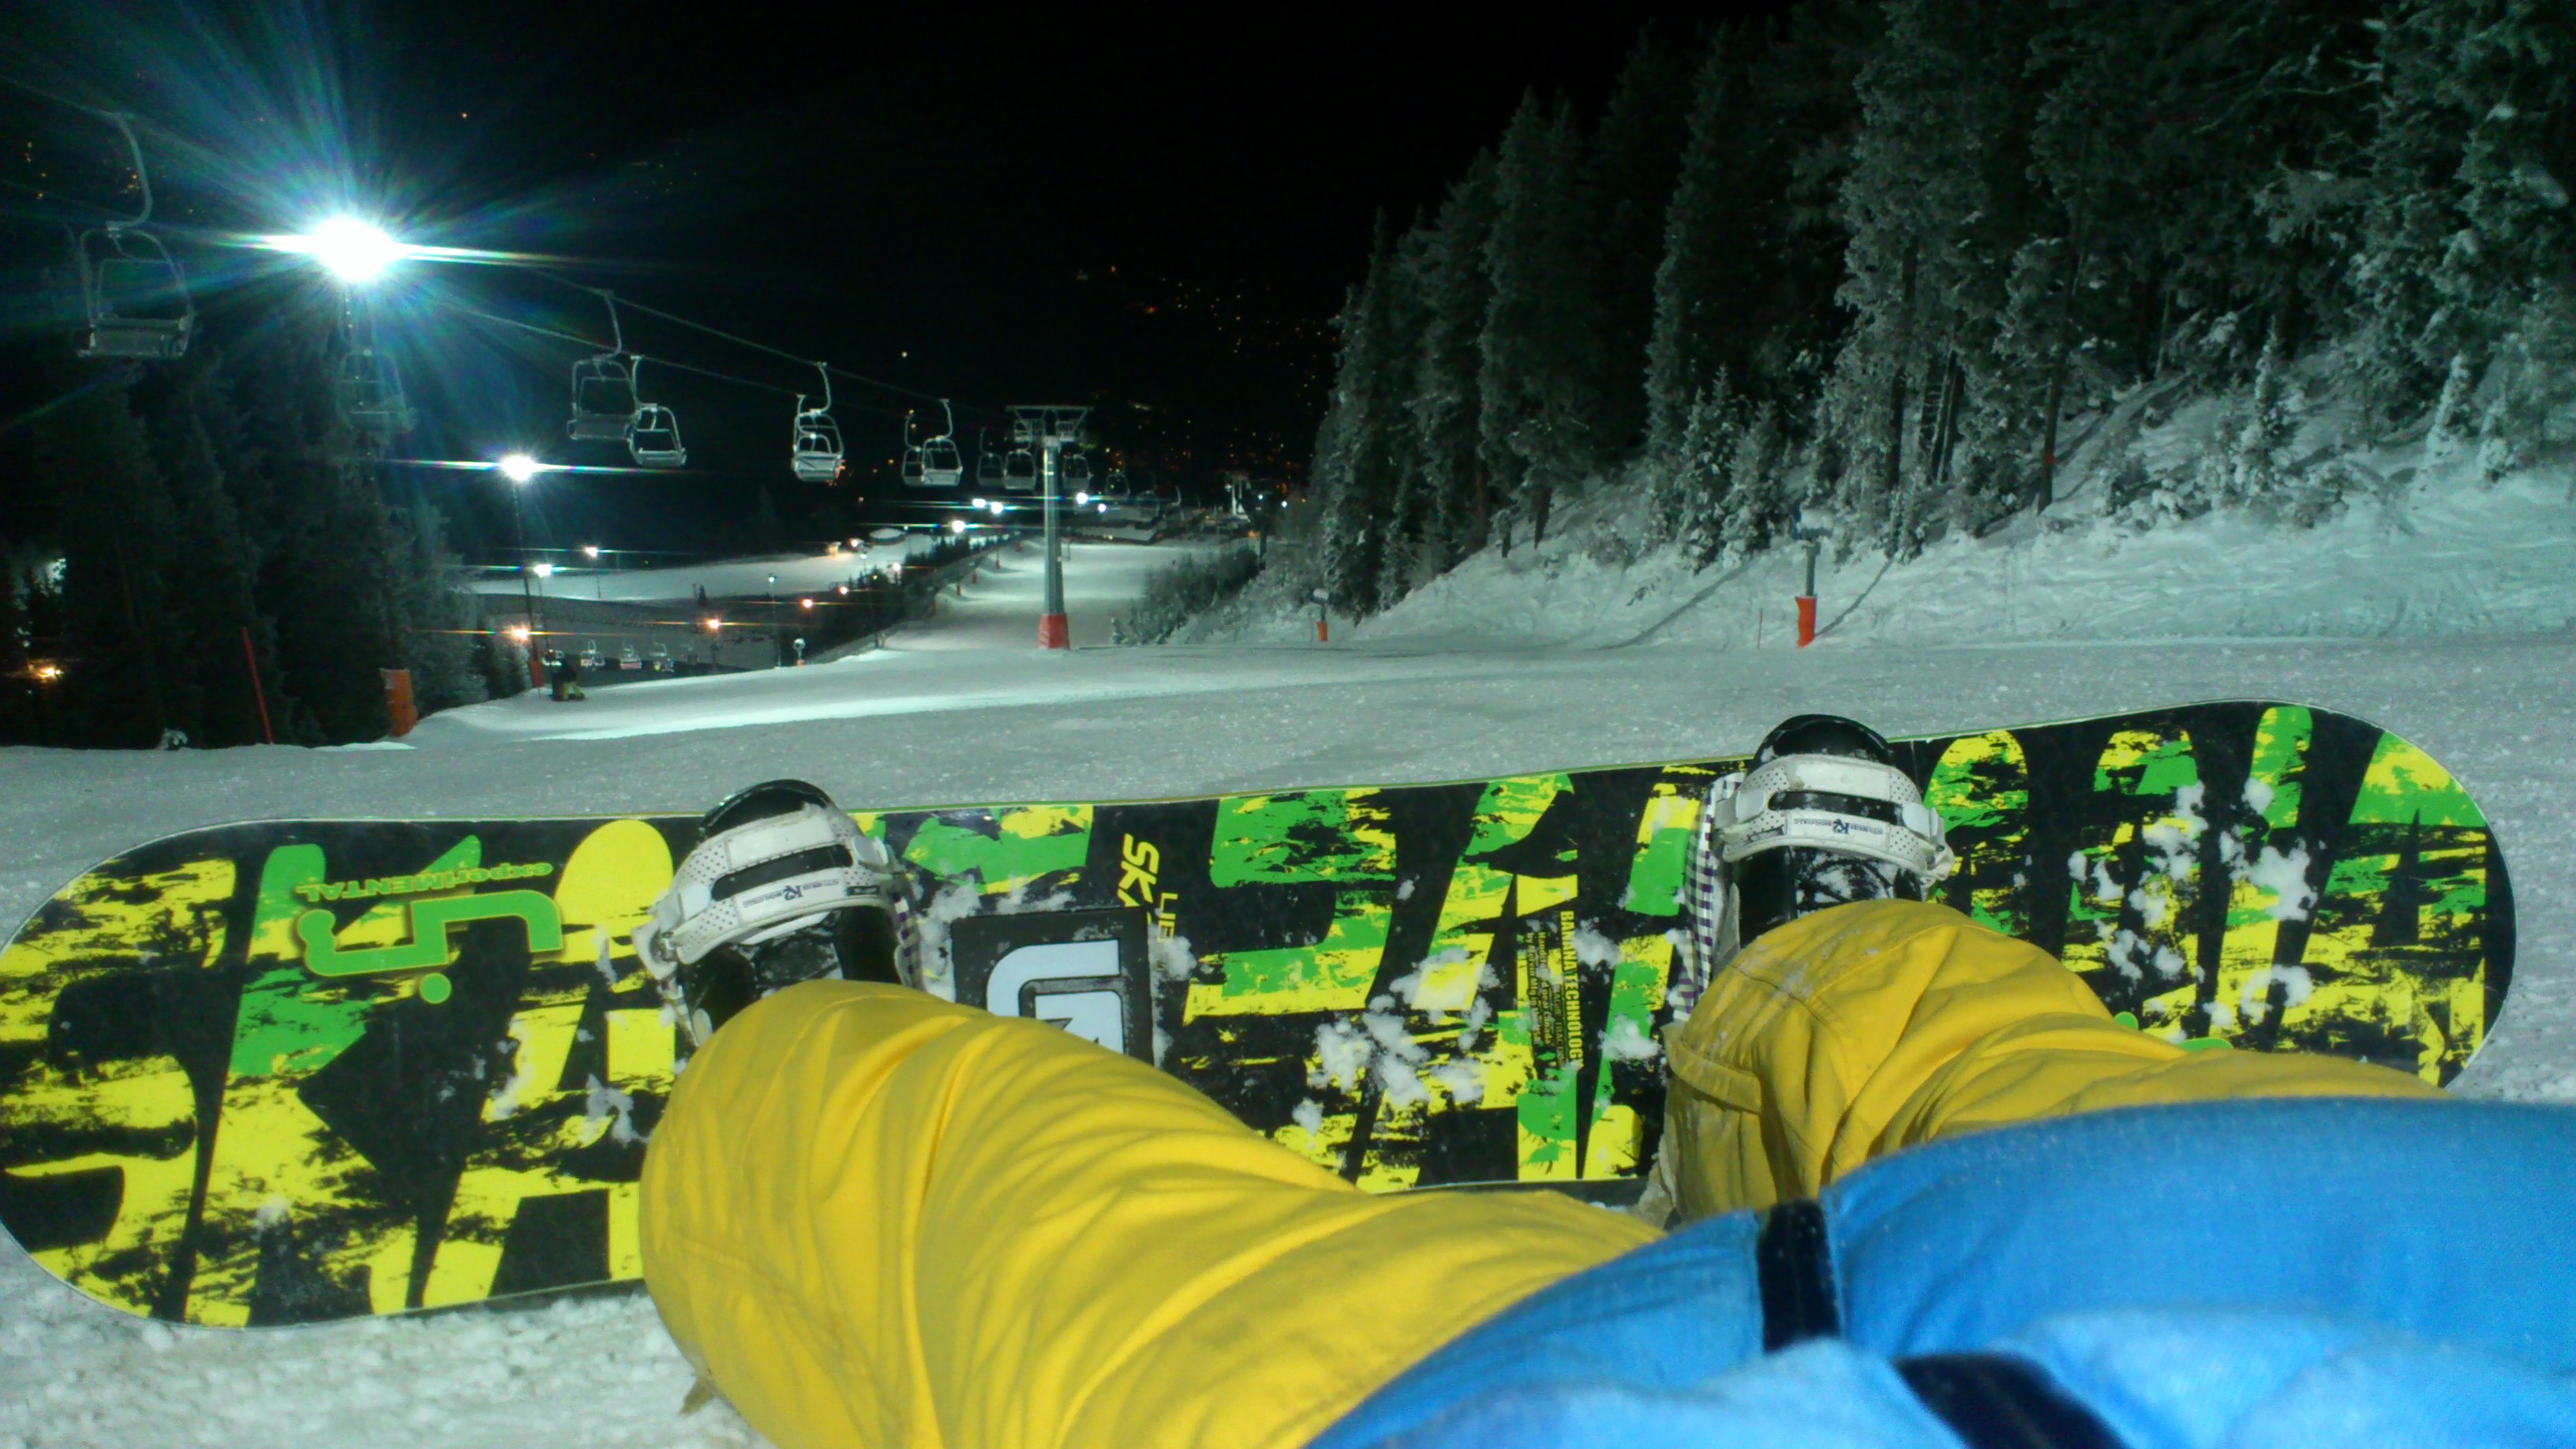 Night Skiing | Doug's Mountain Getaw